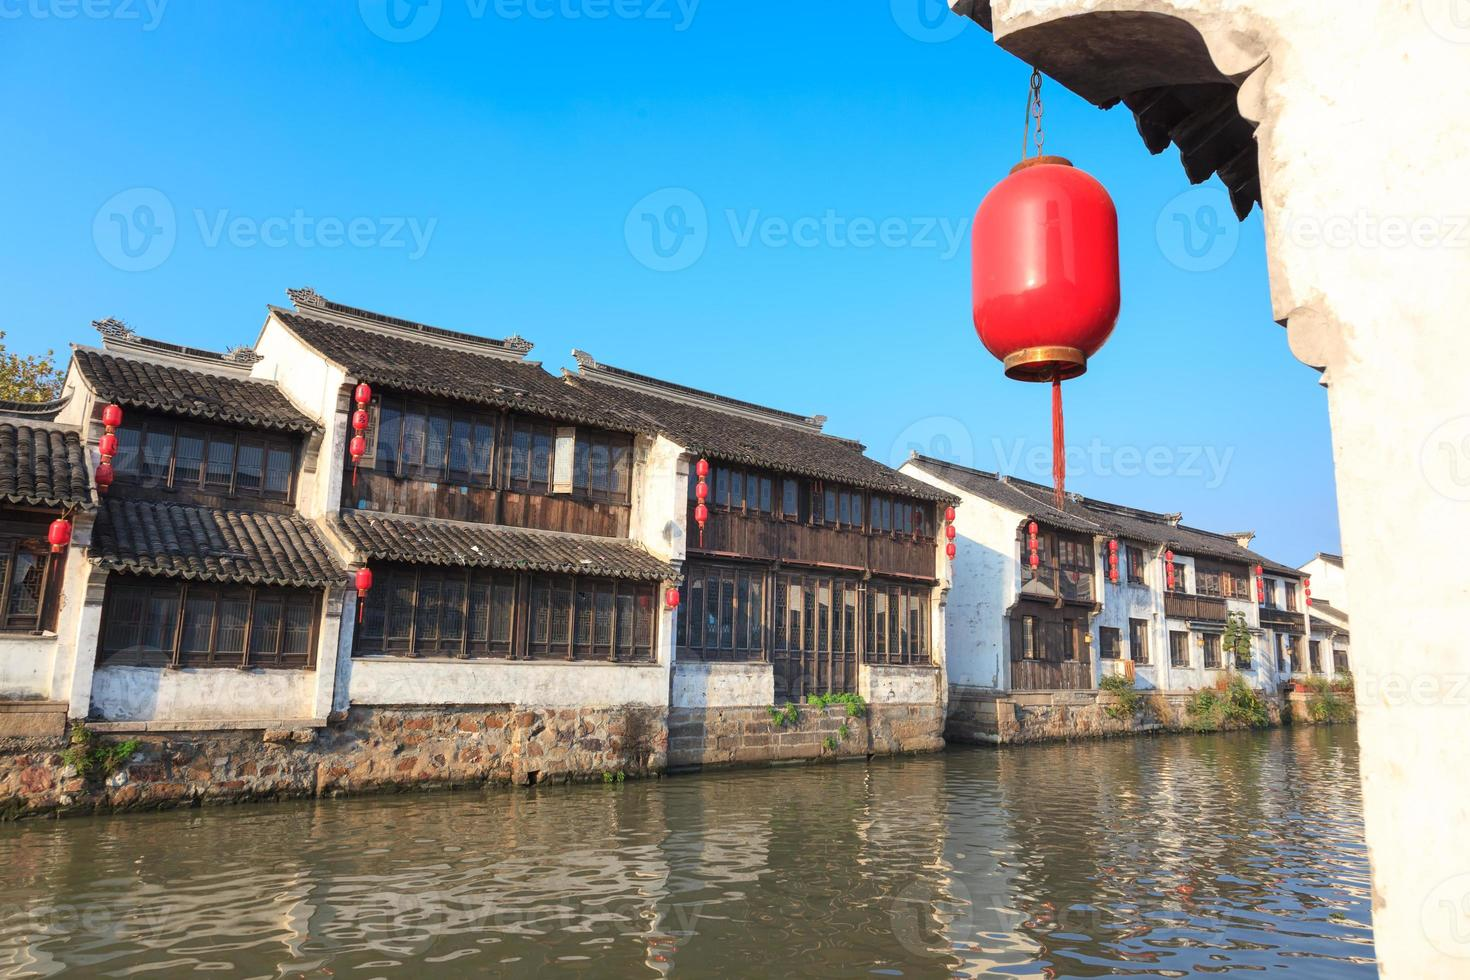 gammal kinesisk traditionell stad vid Grand Canal, Suzhou, Kina foto